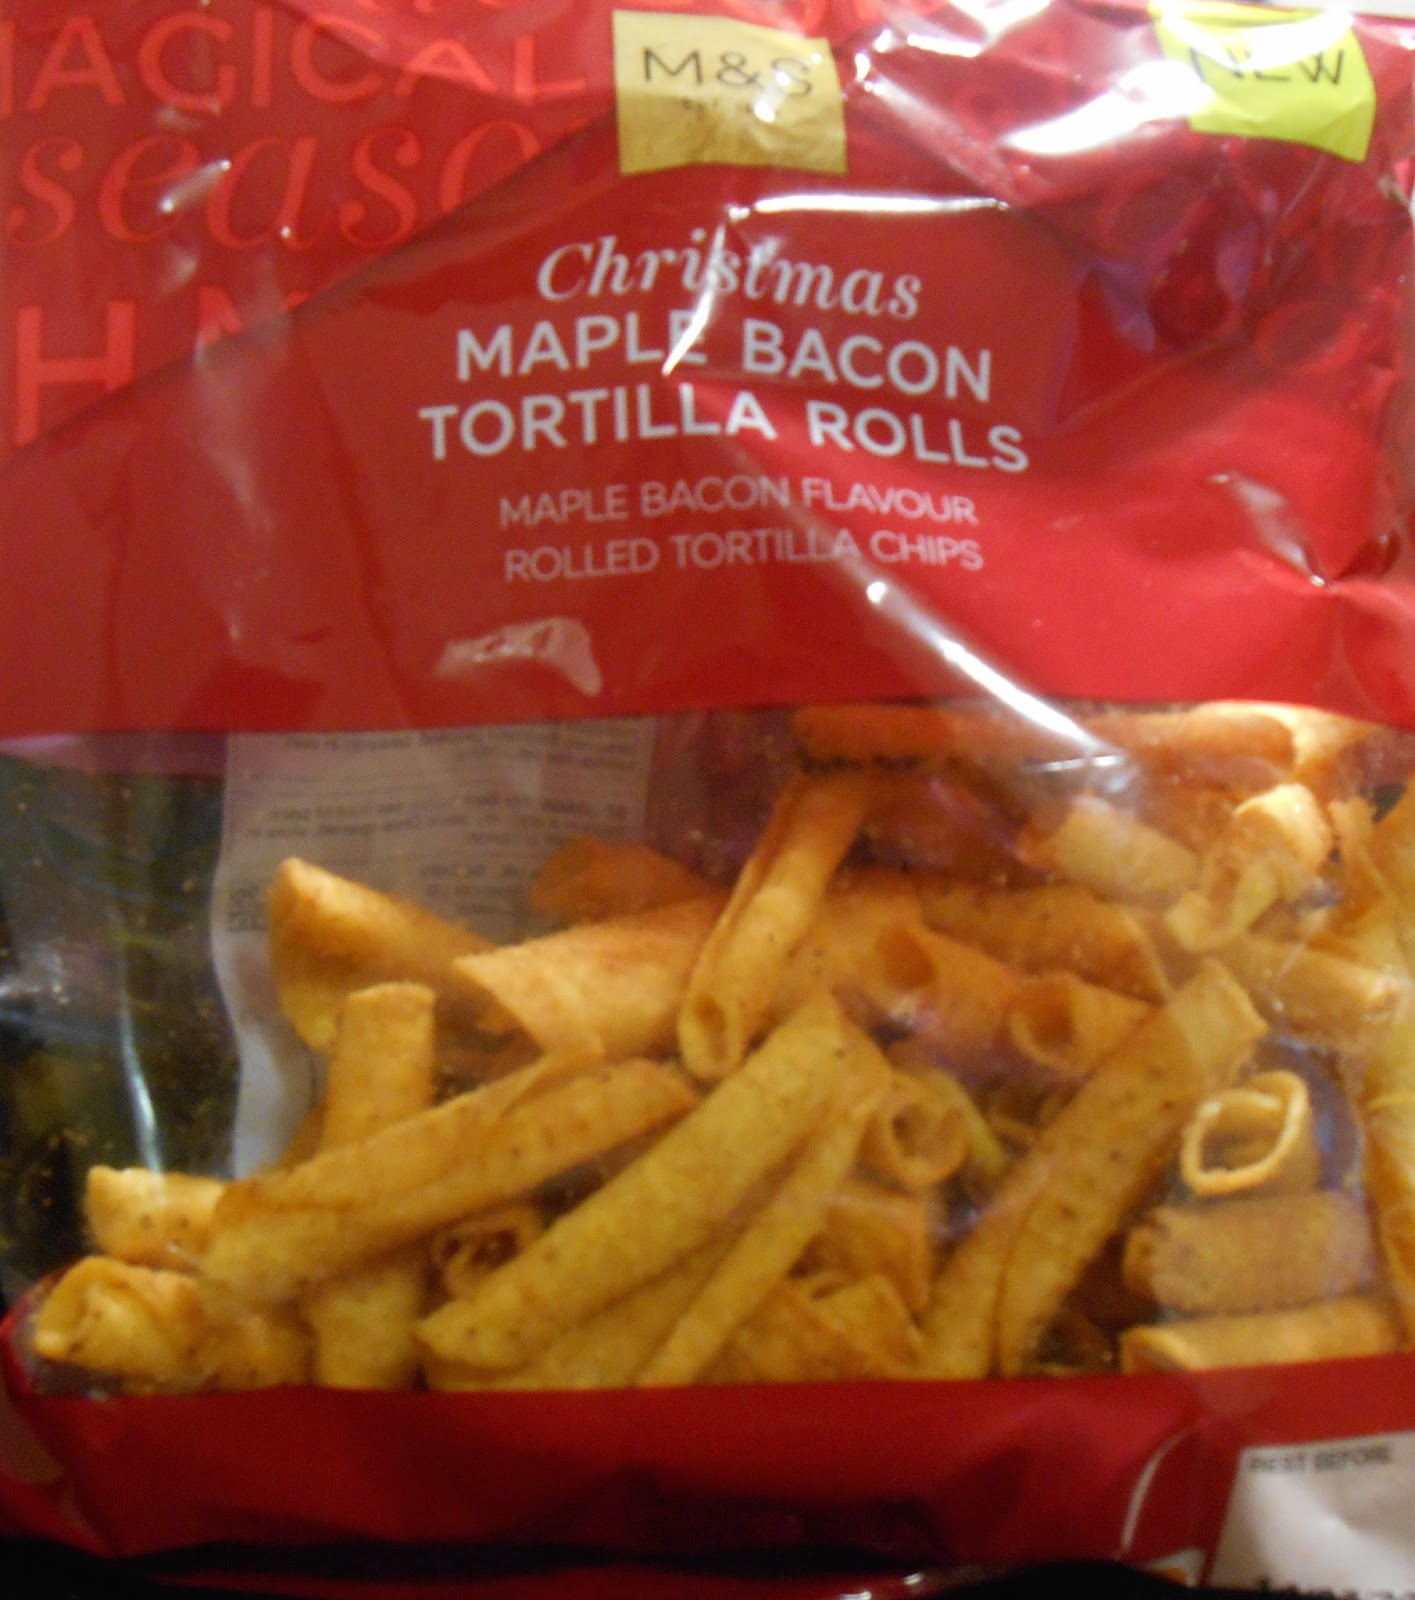 Cheeseburger Crisps Other Stories M S Christmas Maple Bacon